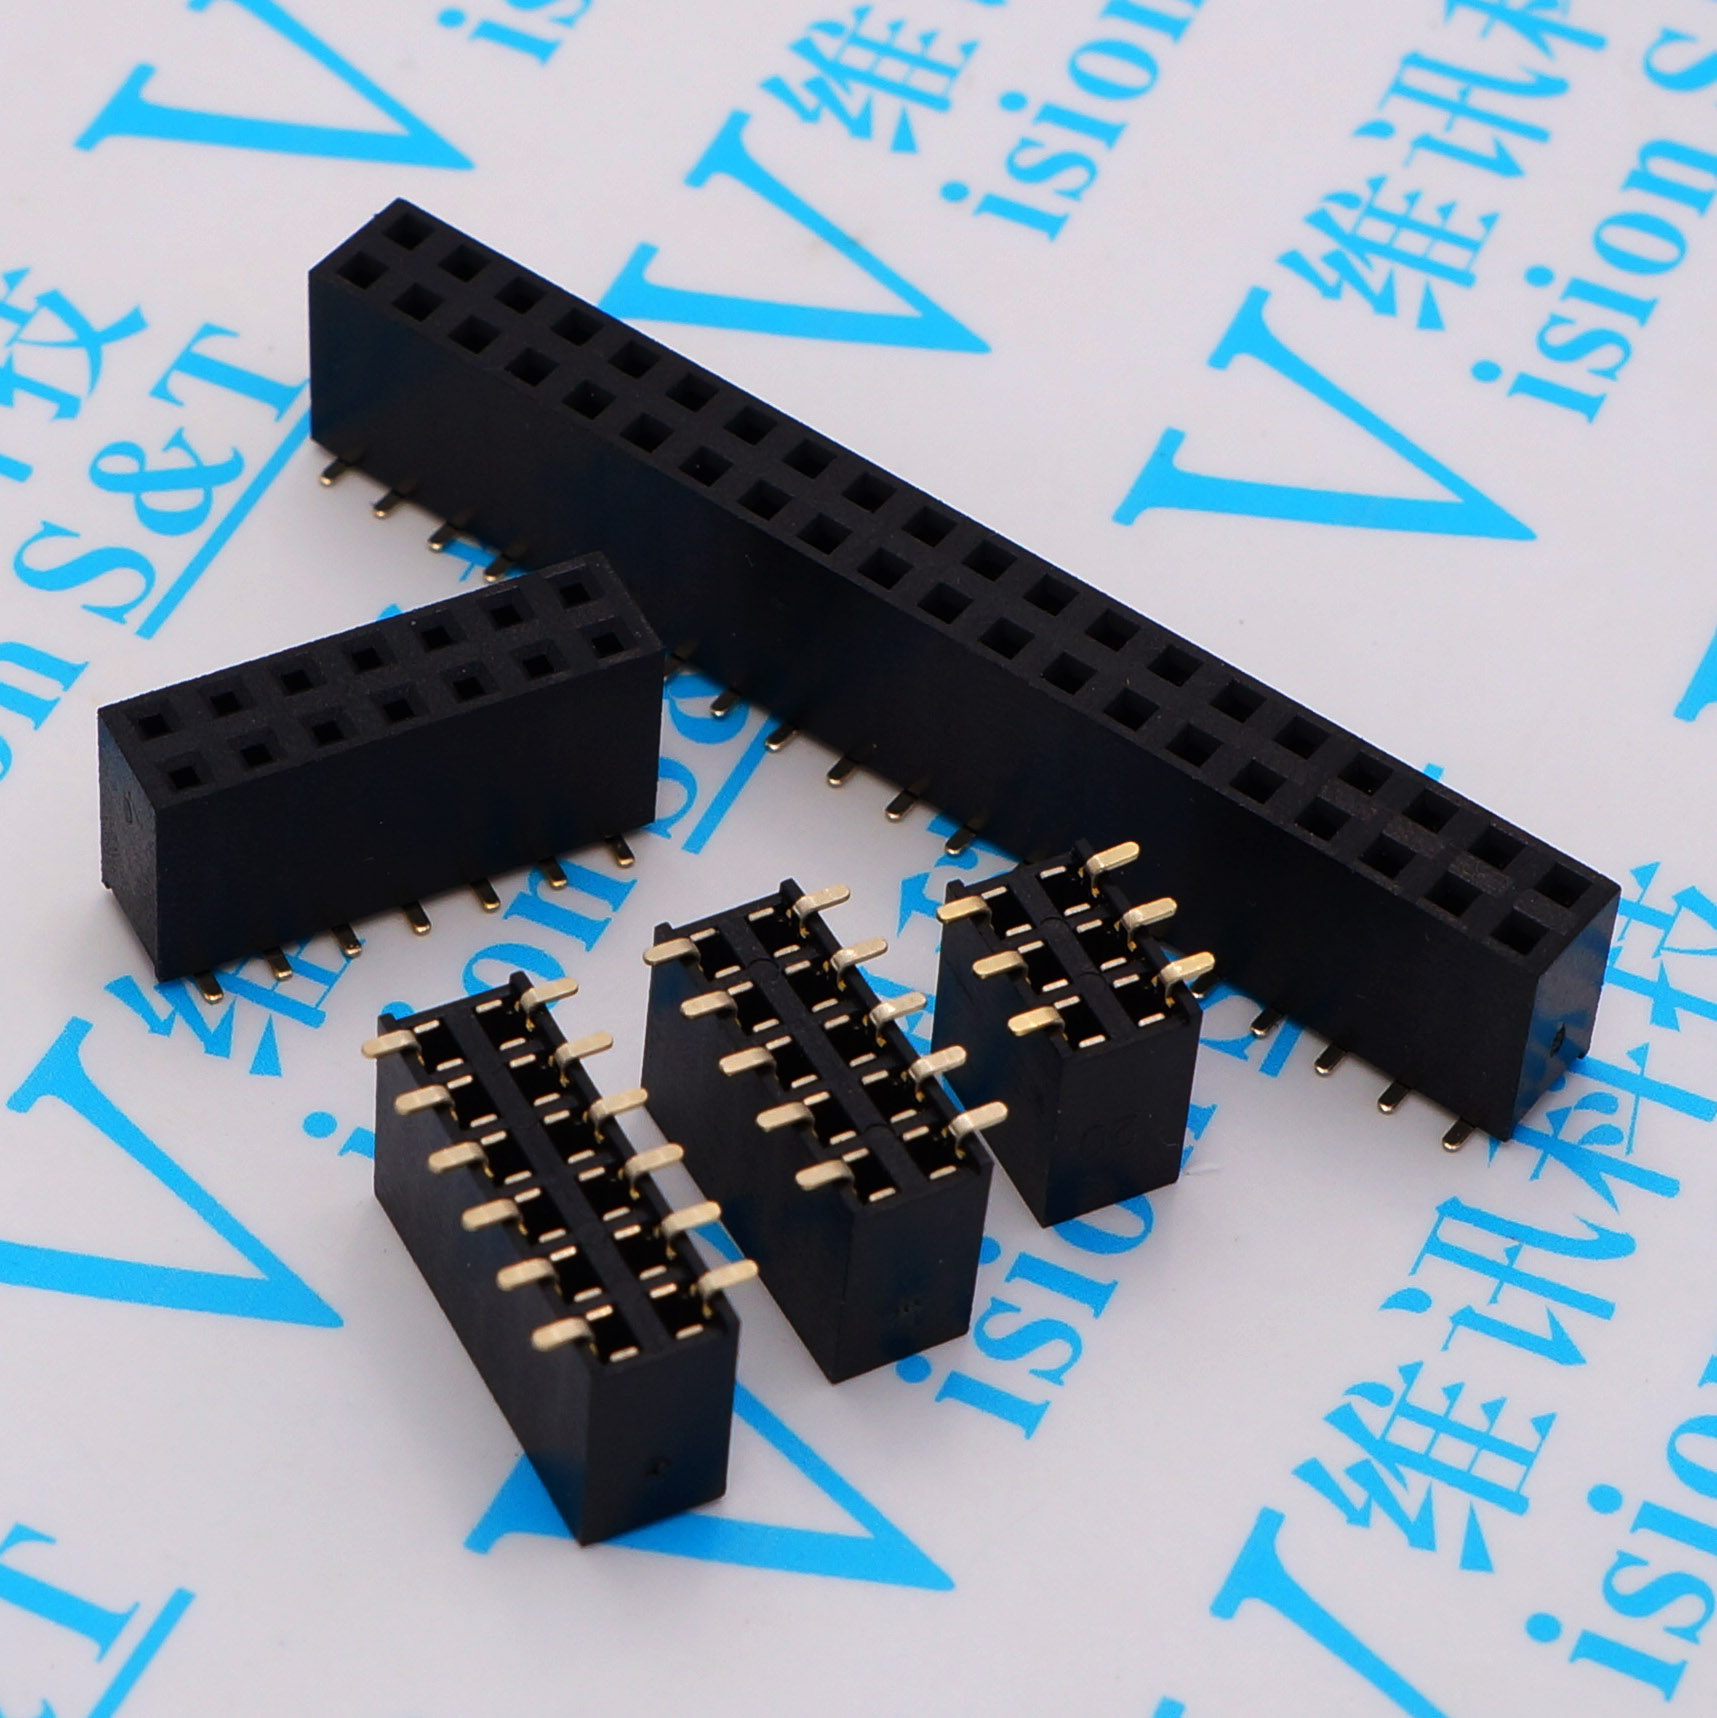 10PCS 1.27MM SMD Double Row Female Socket 2*2/3/4/5/6/7/<font><b>8</b></font>/9/10/12/16/20/40/ <font><b>PIN</b></font> Female <font><b>Header</b></font> Connector image